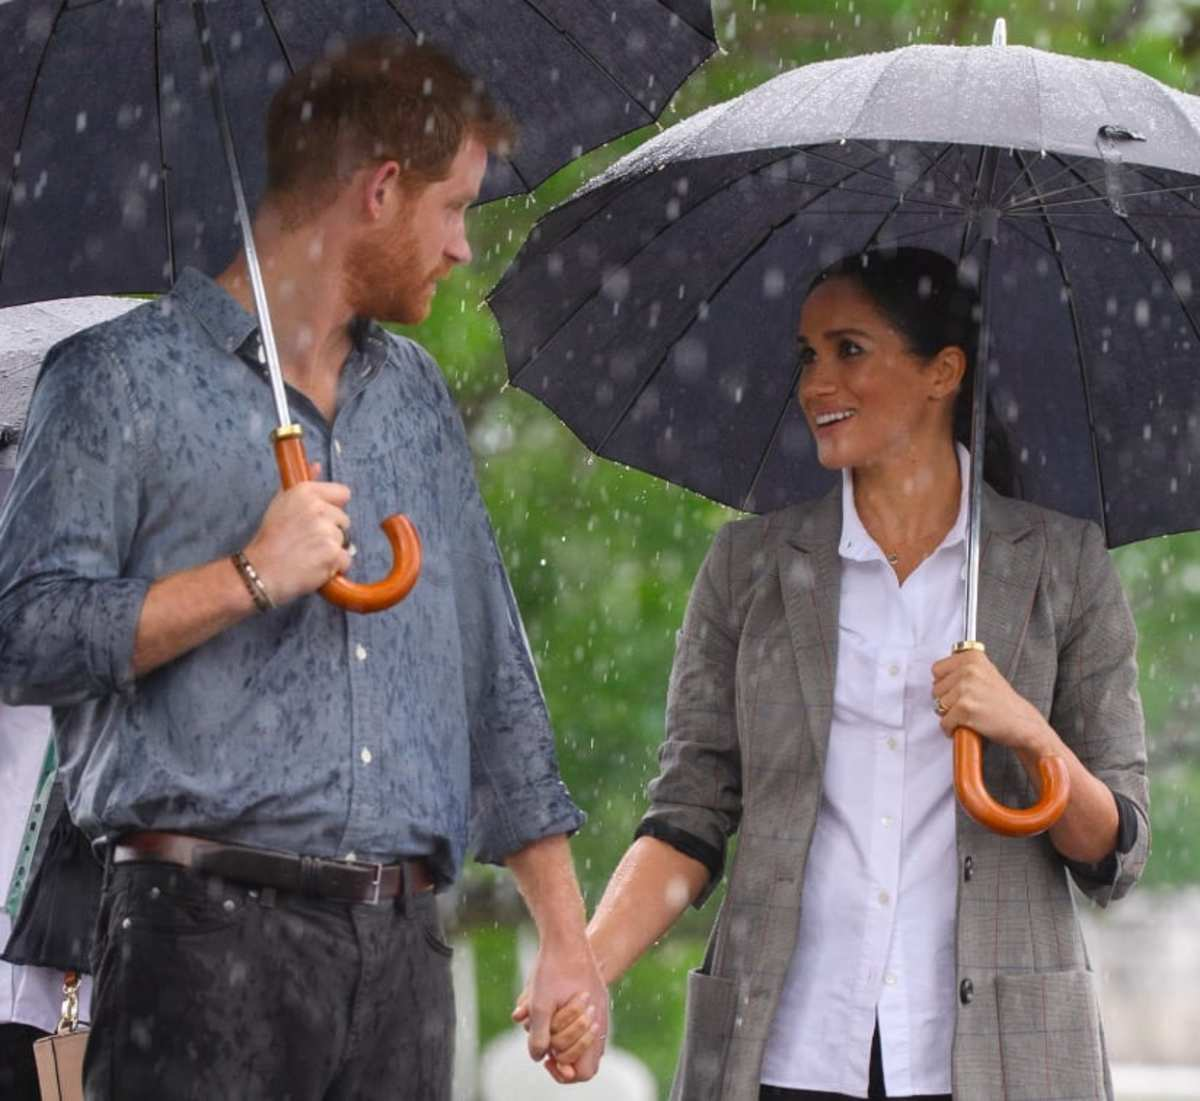 The royal couple gazing in each other's eyes as they hold hands